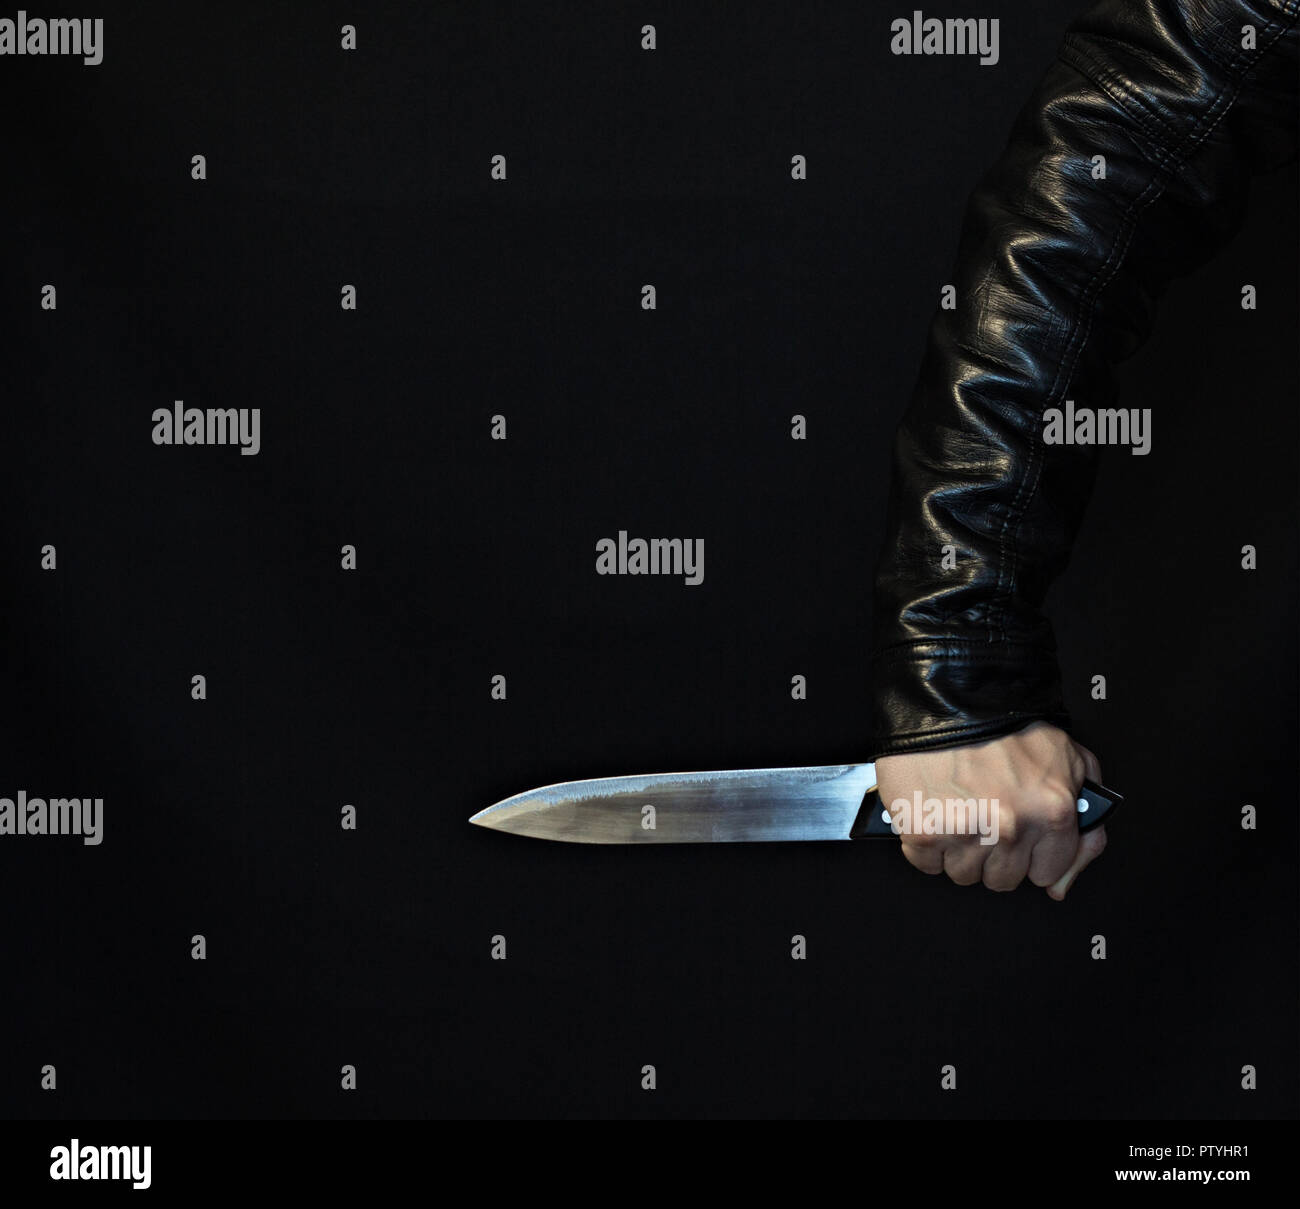 A man's hand in a jacket with a knife on a black background - Stock Image